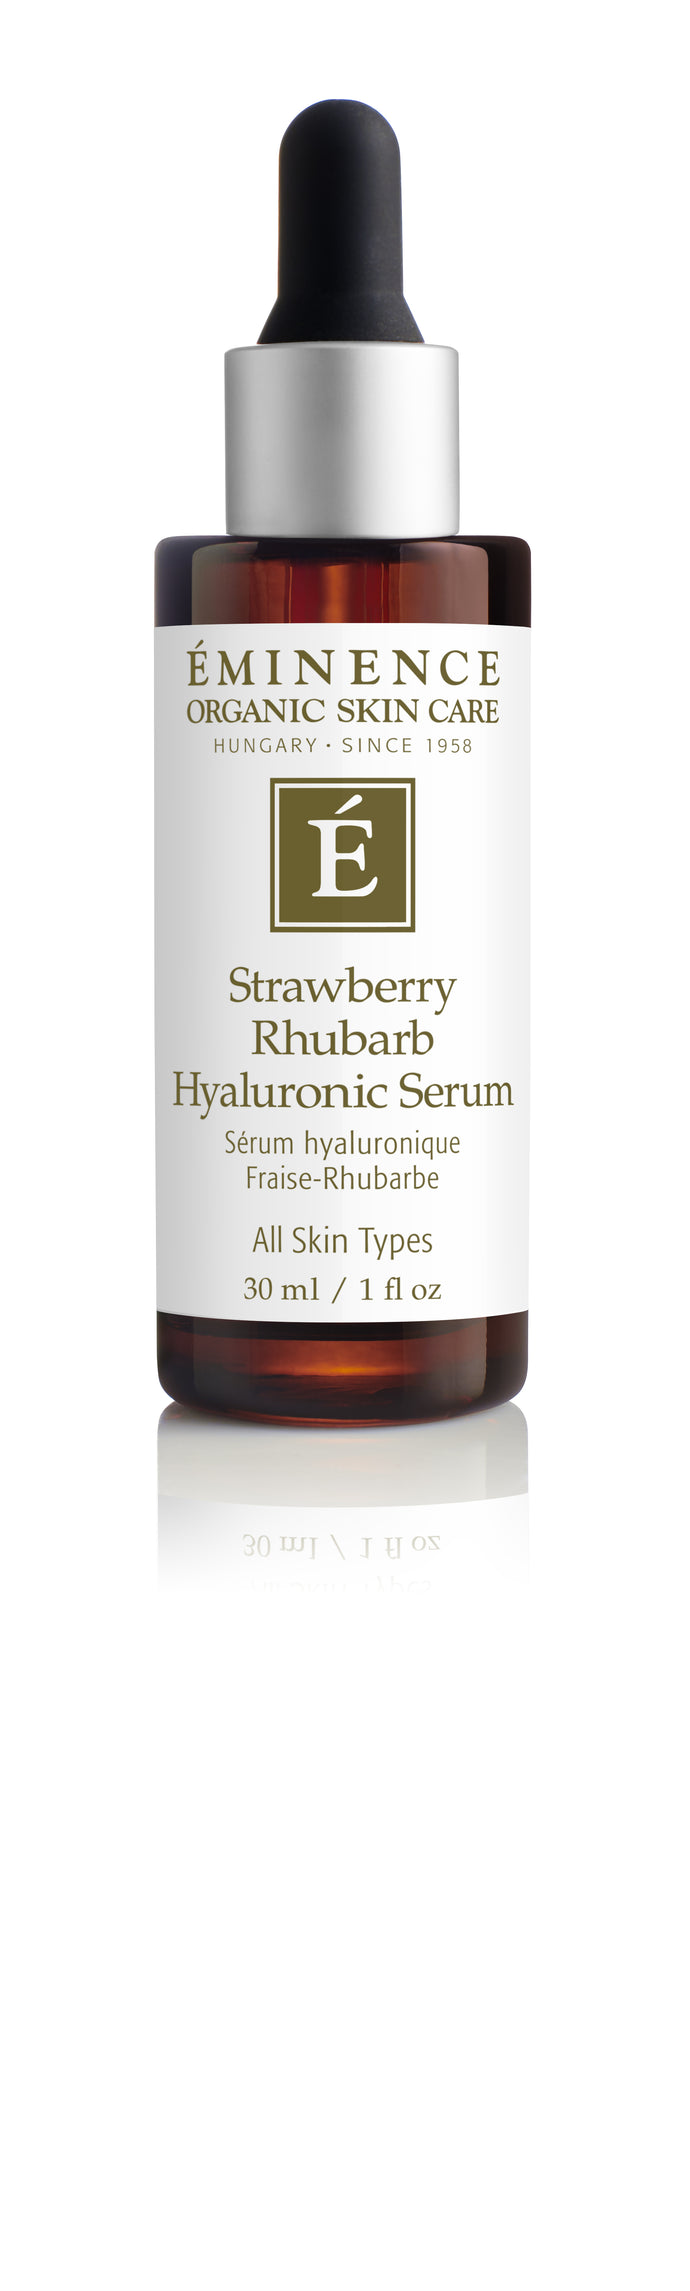 Eminence Organics Strawberry Rhubarb Hyaluronic Serum